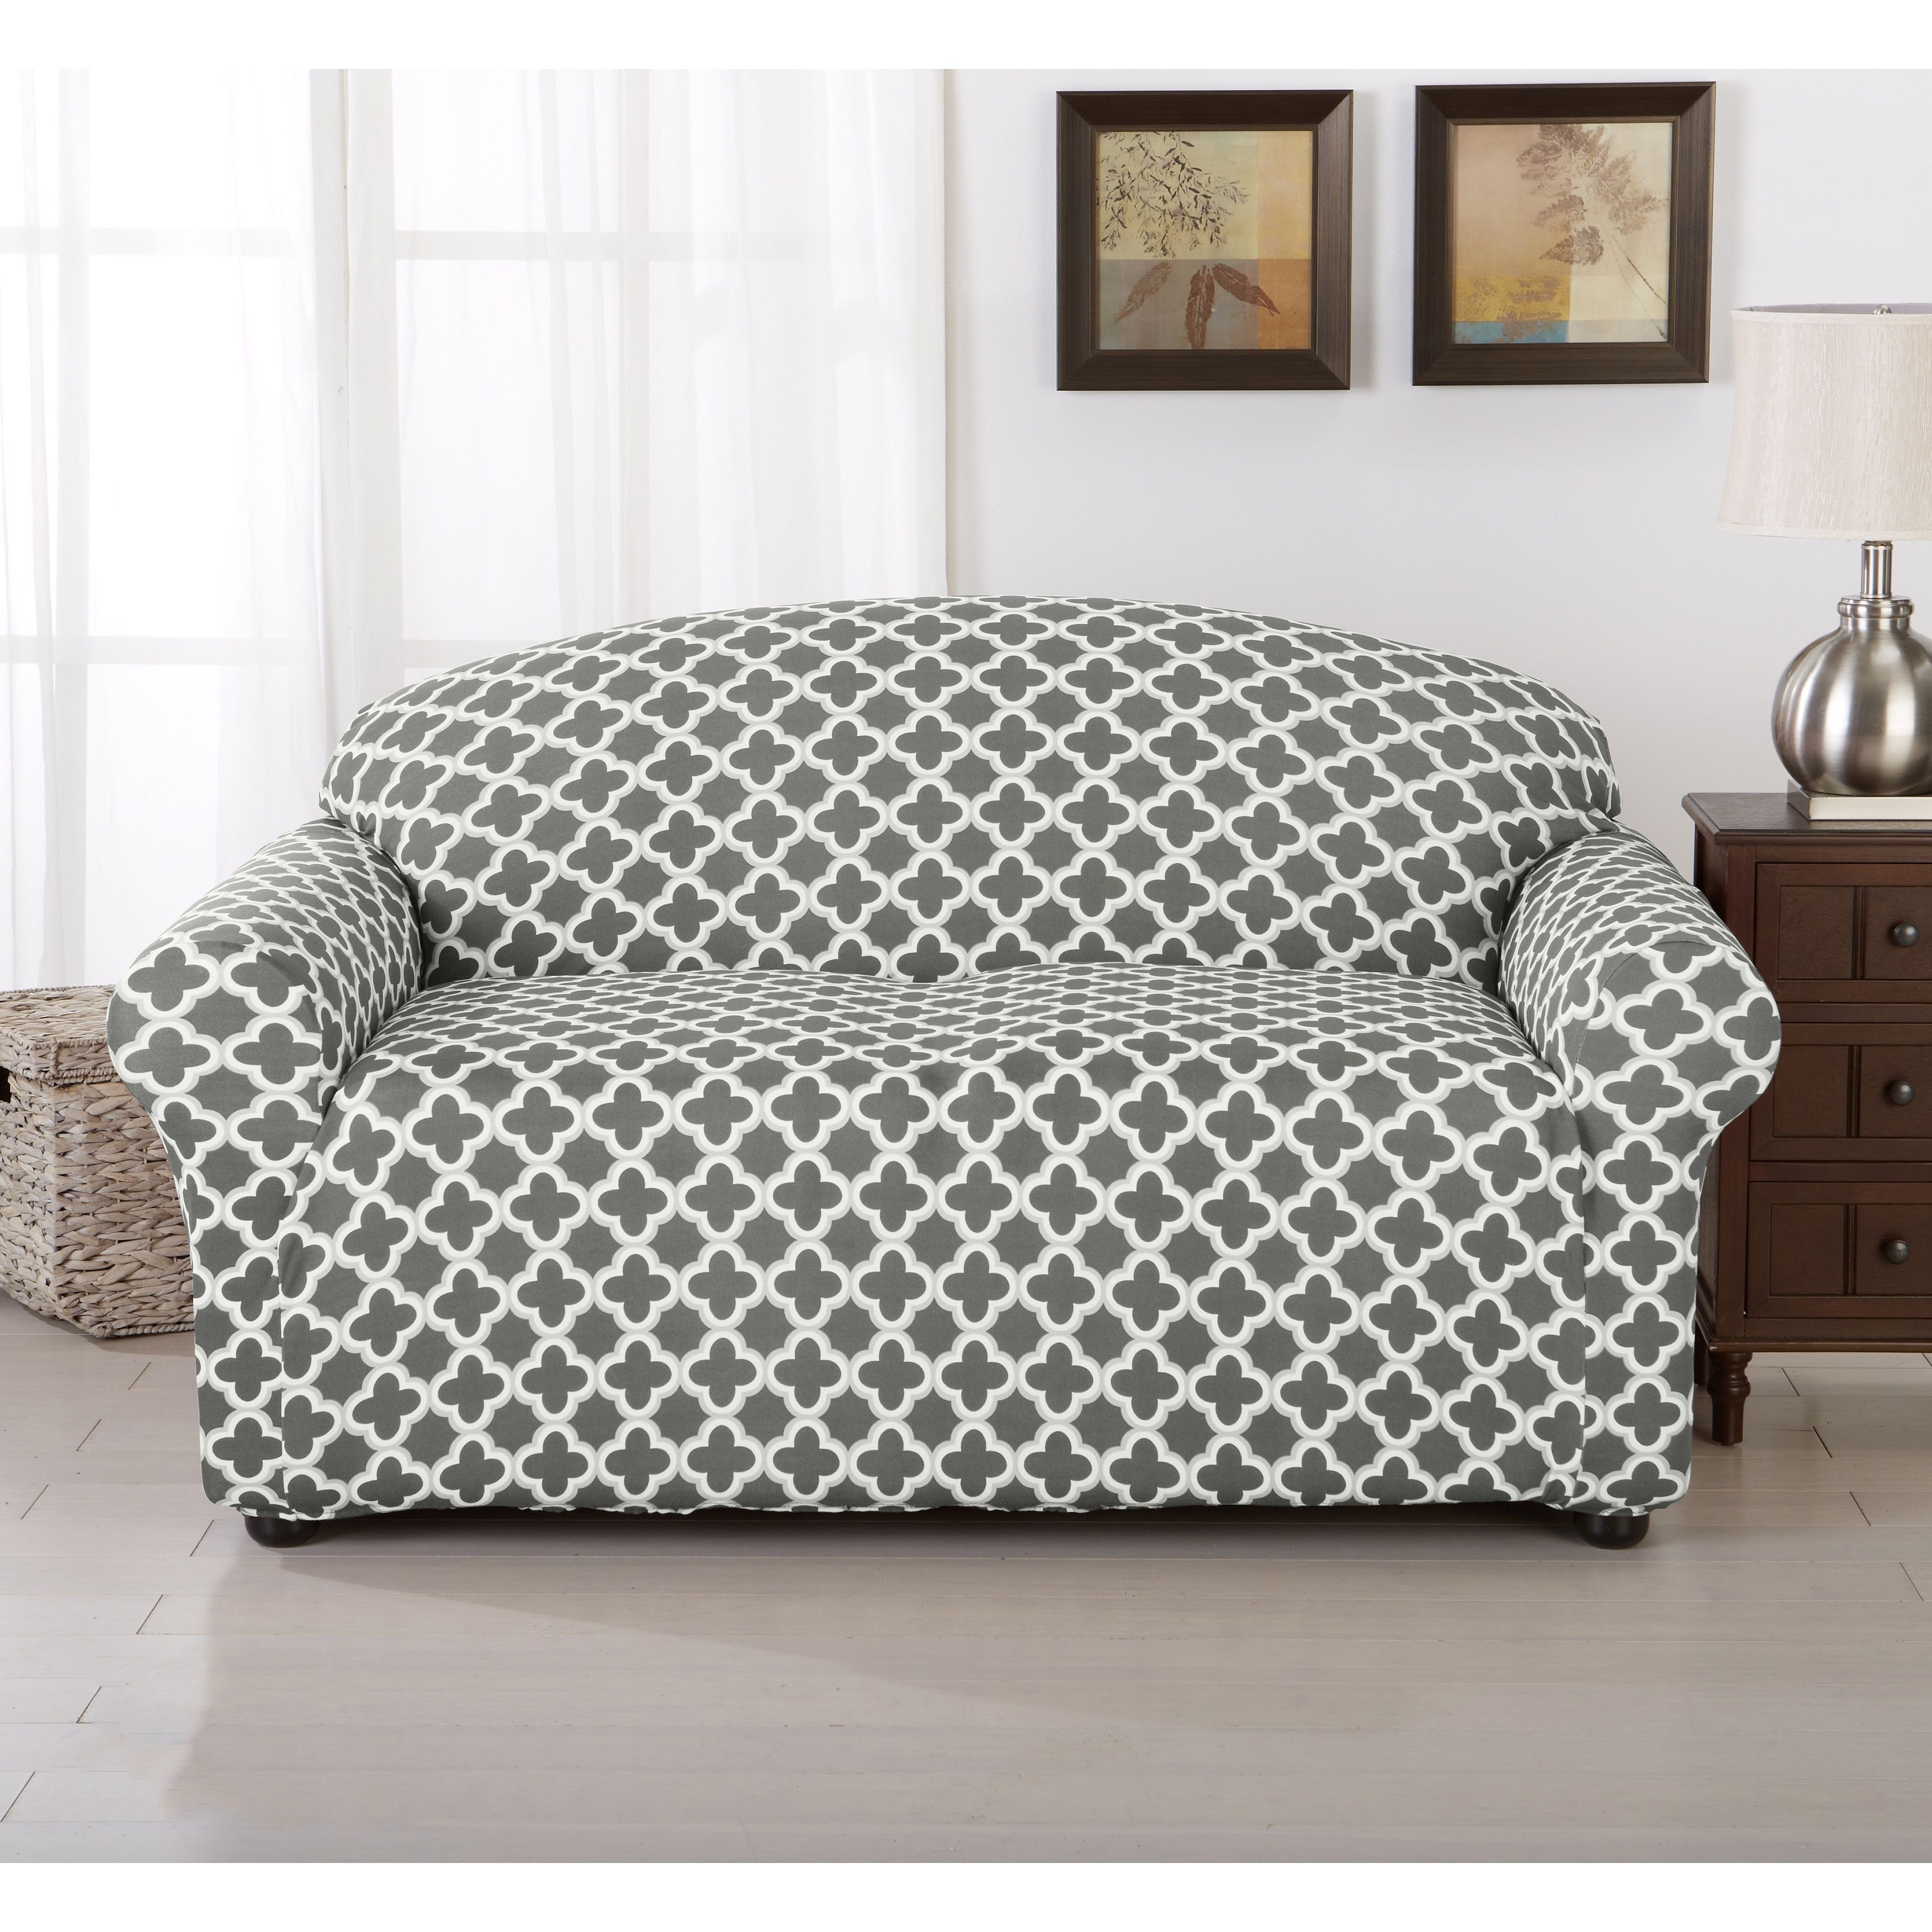 Brenna Collection Trellis Print Stretch Form Fitted Loveseat Slip Cover As Is Item Furniture Slipcovers Loveseat Slipcovers Slipcovers